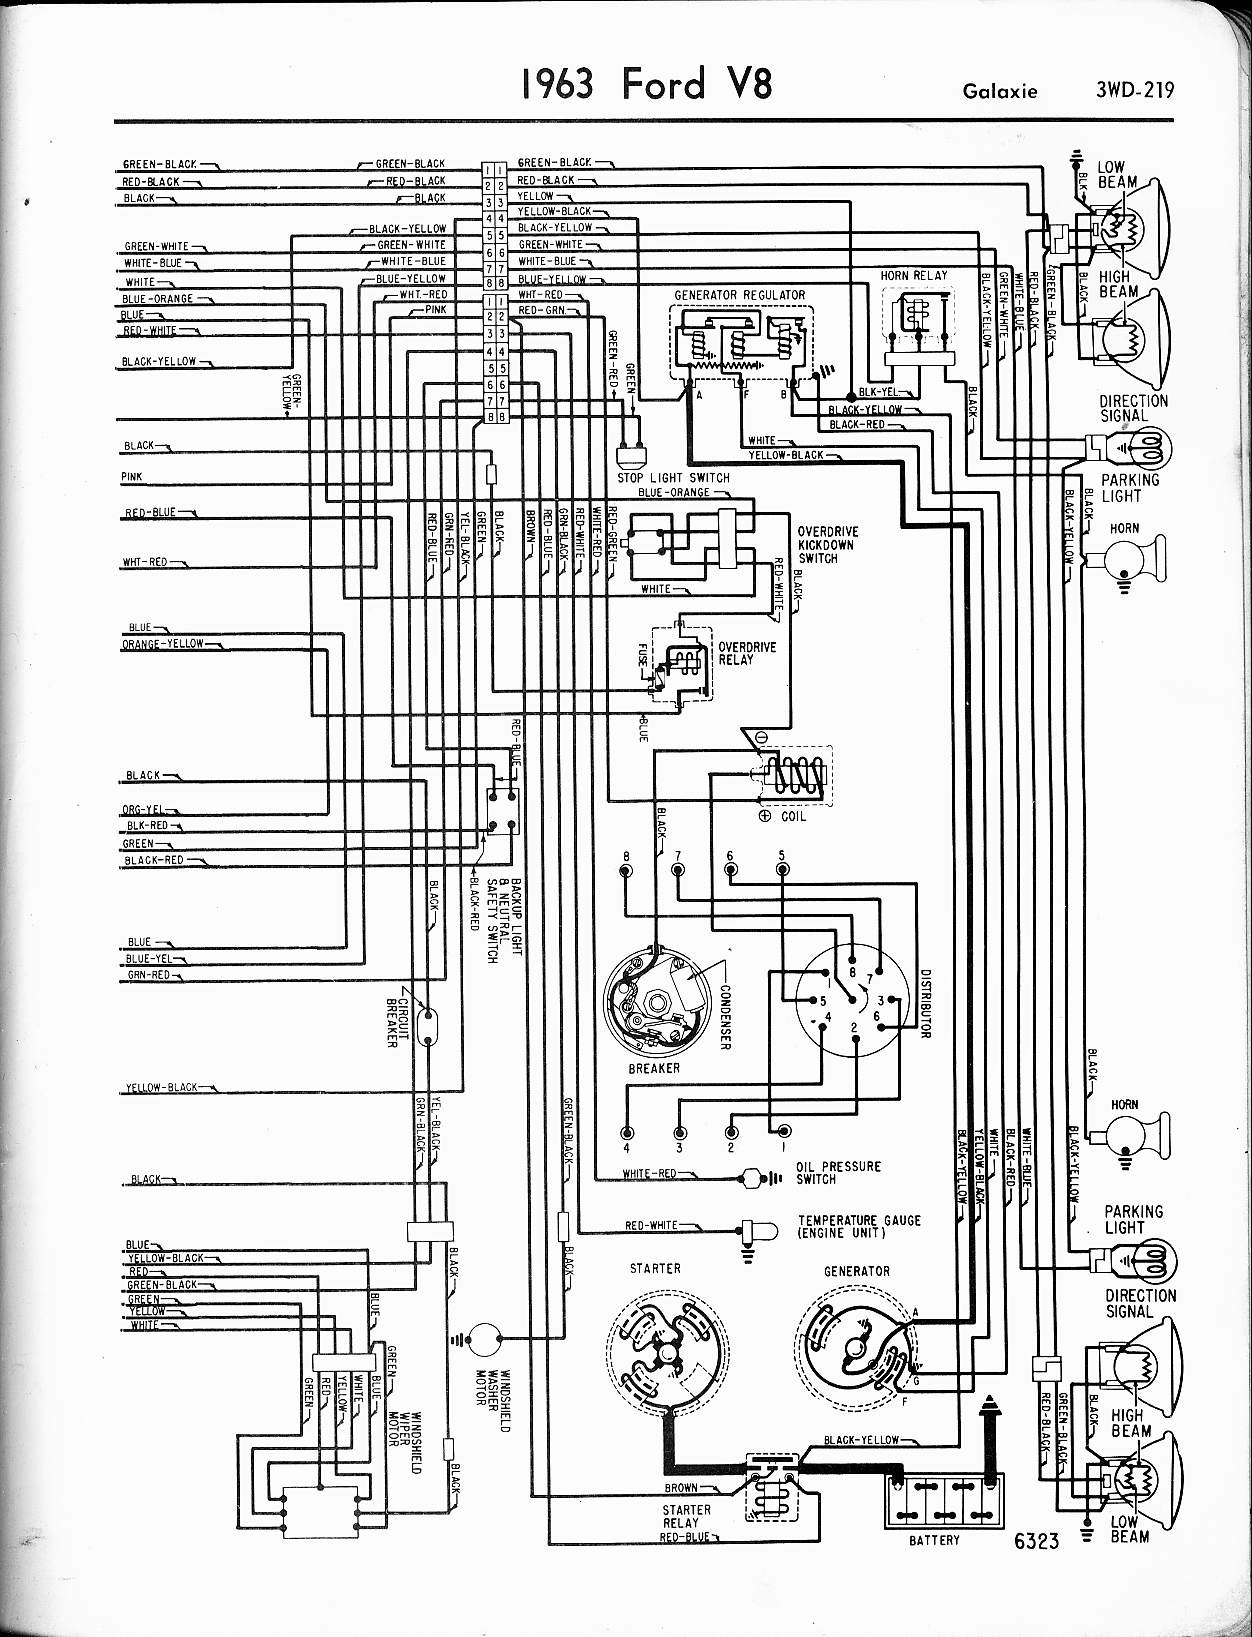 2001 F150 Steering Diagram further T3554228 Electrical problem under dash remove together with 65 Galaxie Wiring Diagram furthermore I Need The Wiring Diagram For Power Windows Door Locks In Window also Pineapple Crochet Doily Diagram. on chevy steering column wiring diagram